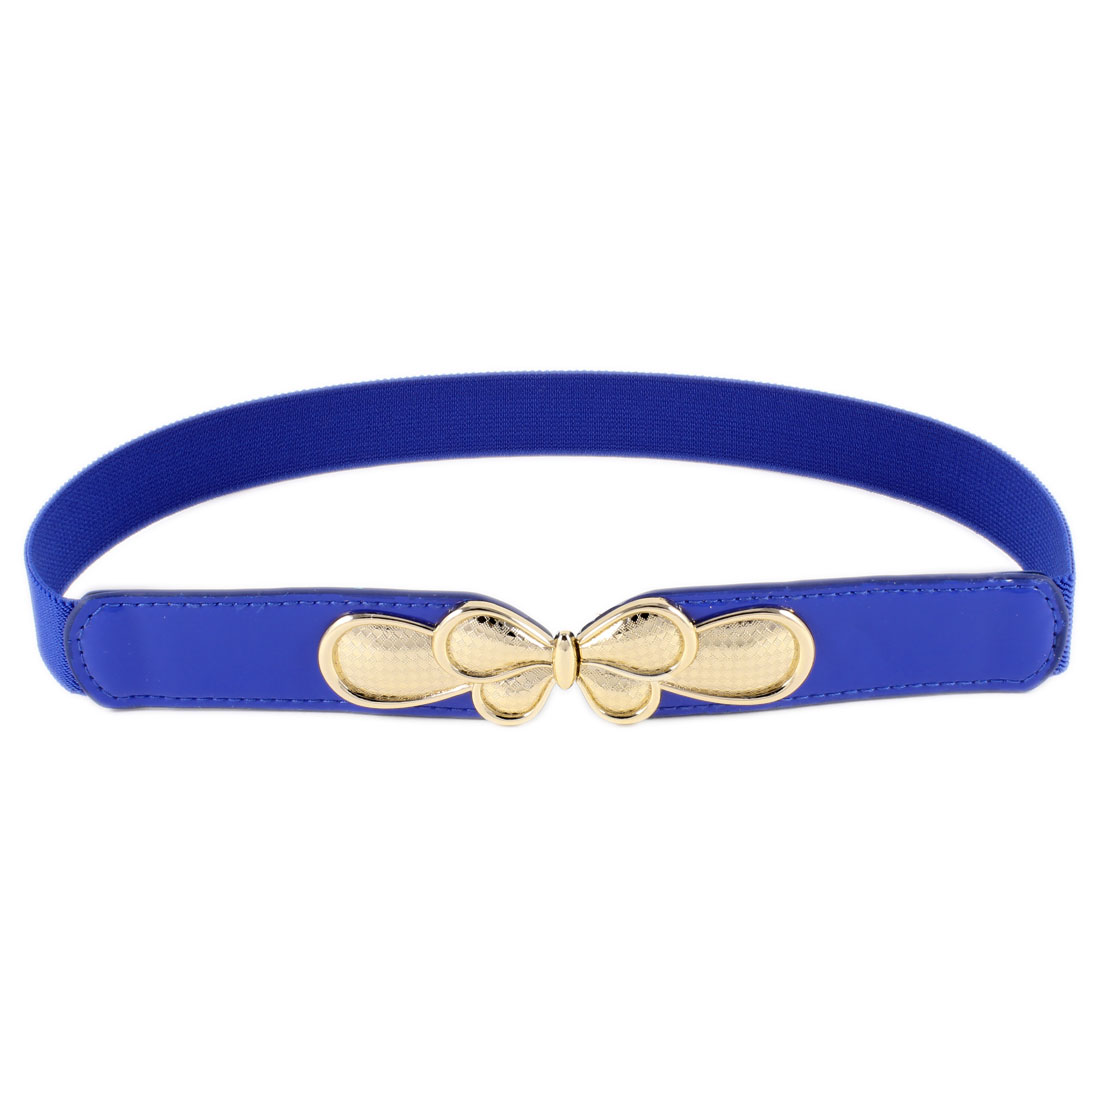 Butterfly Interlocking Closure Cinch Waist Belt 2.5CM Width Blue for Ladies